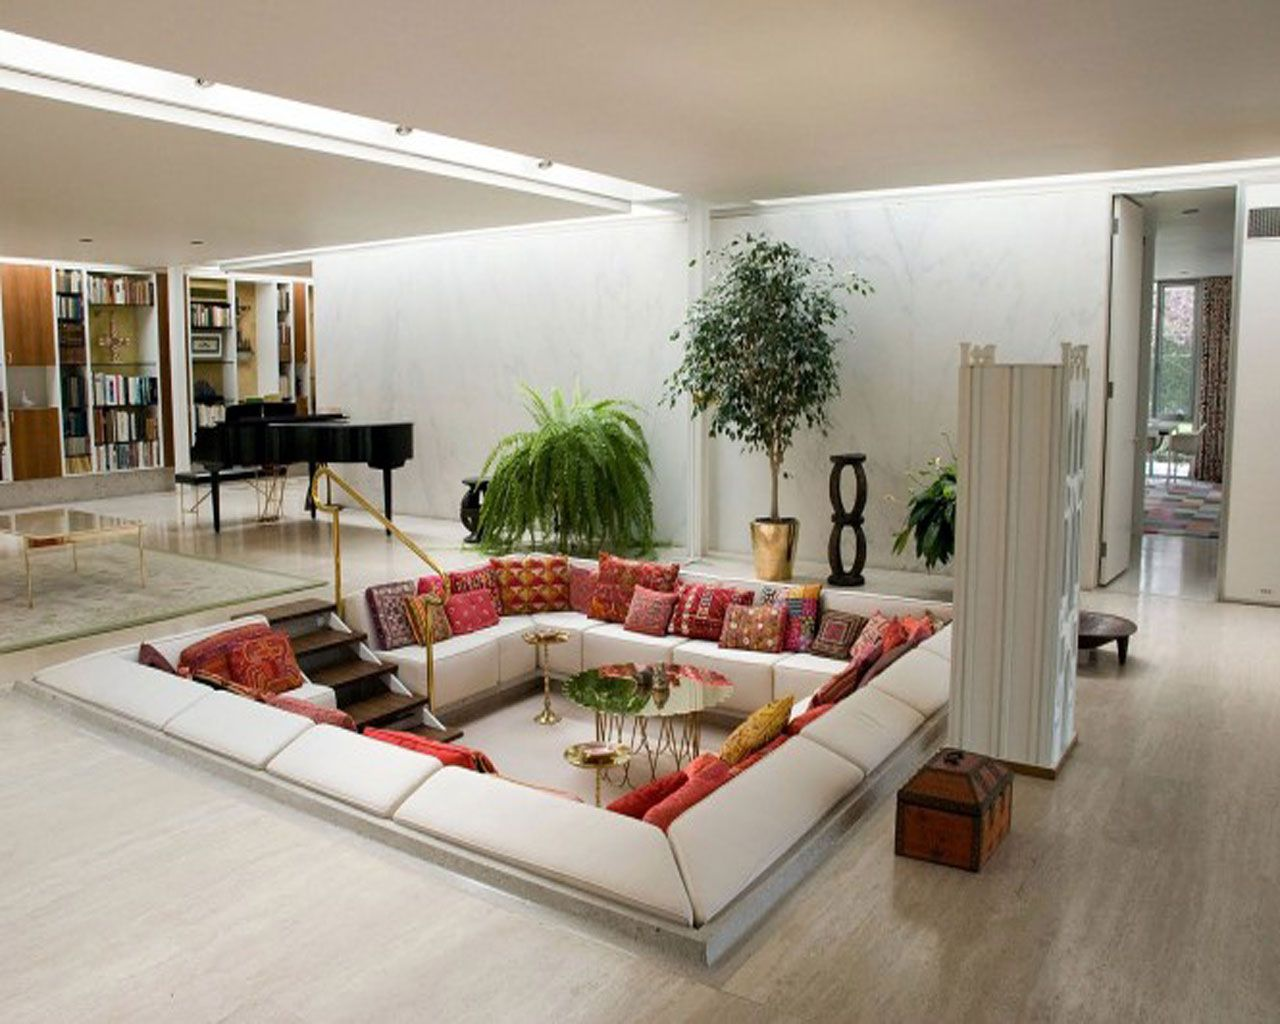 Wonderful Attractive Living Room Design Ideas For Basement With Unique Modern Table  And Corner Sofa Also Using Pillow